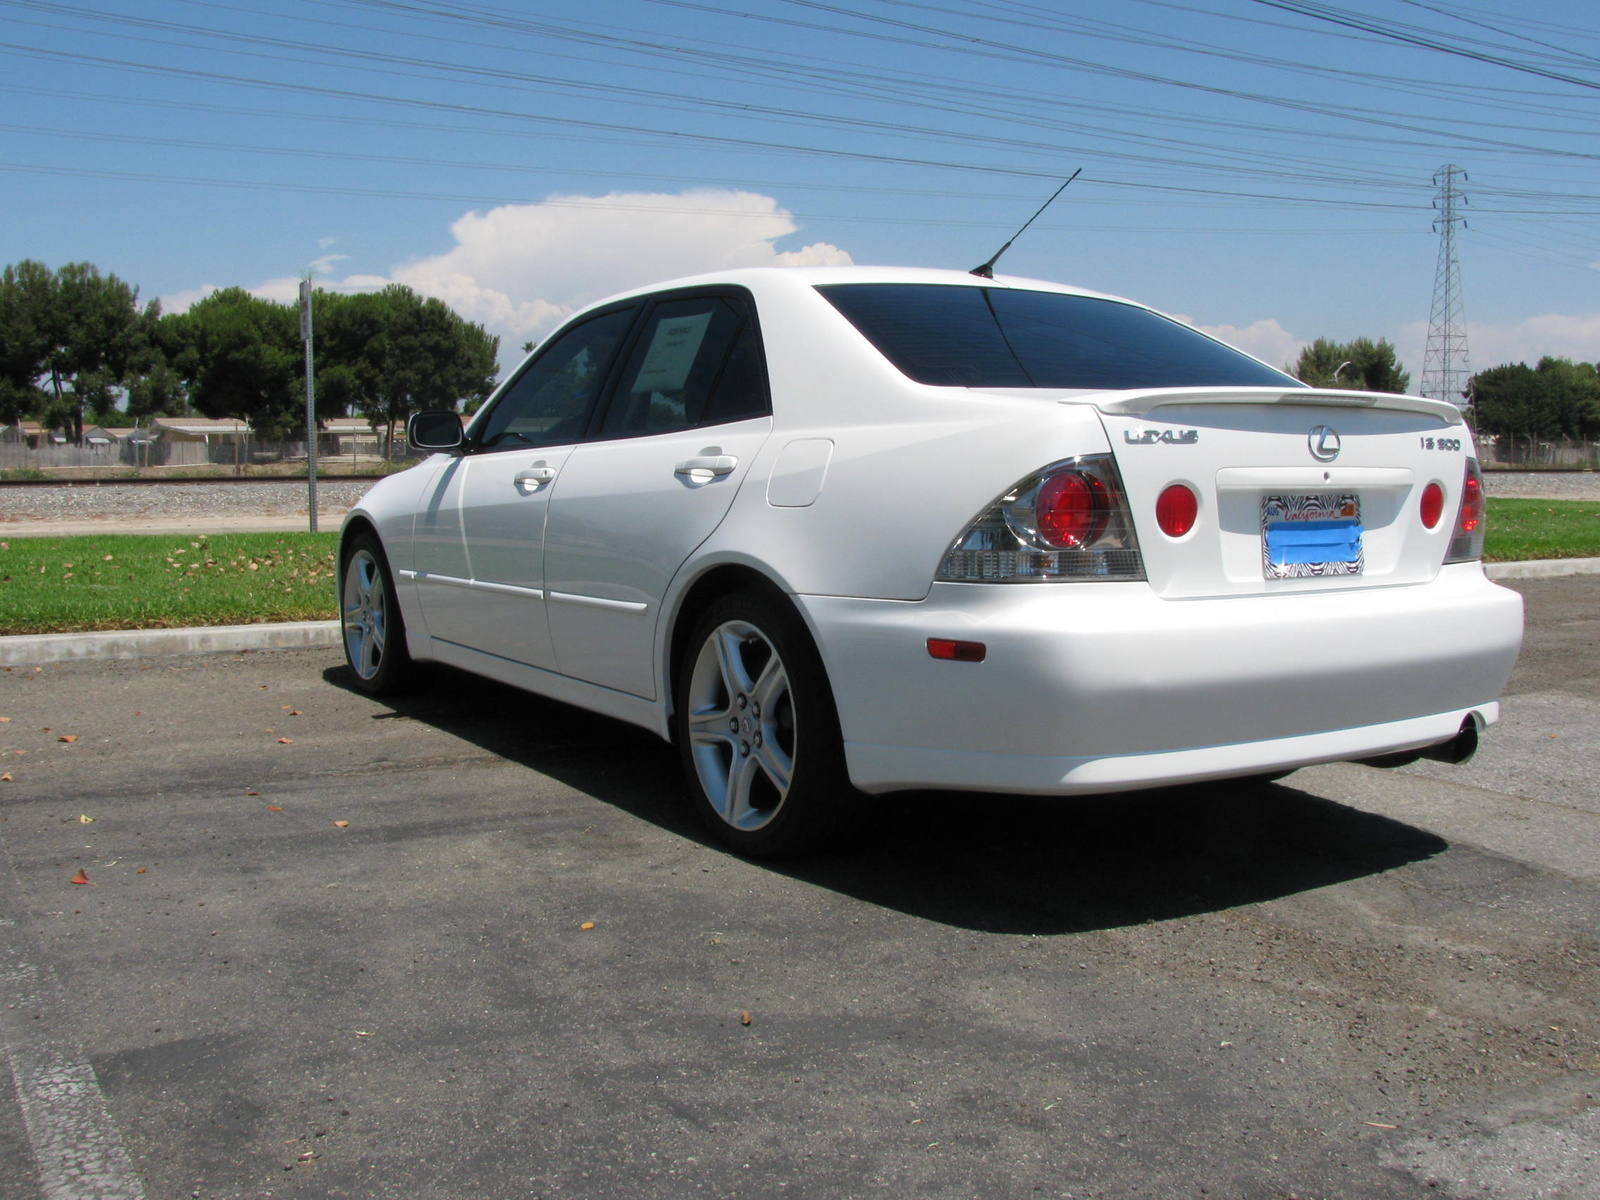 Picture of 2003 lexus is 300 5 speed exterior